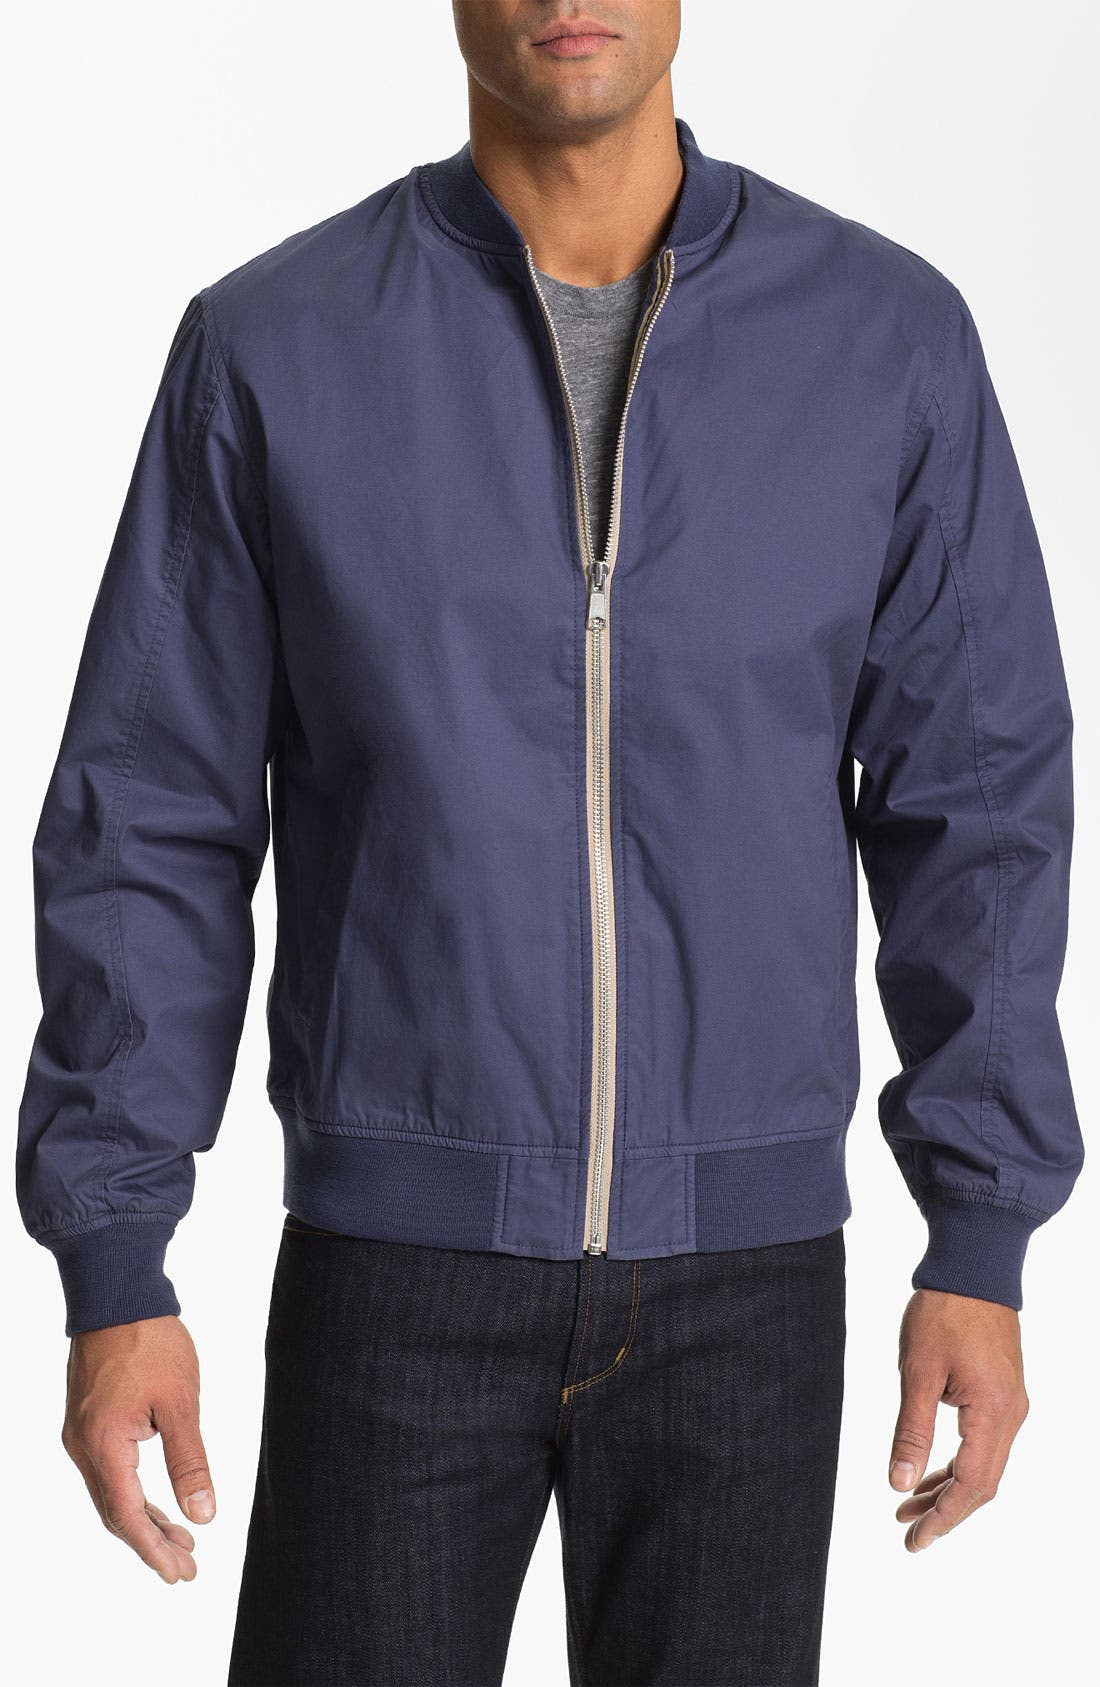 Main Image - Cutter & Buck 'Edmonds Washed' Cotton Jacket (Big & Tall) (Online Only)